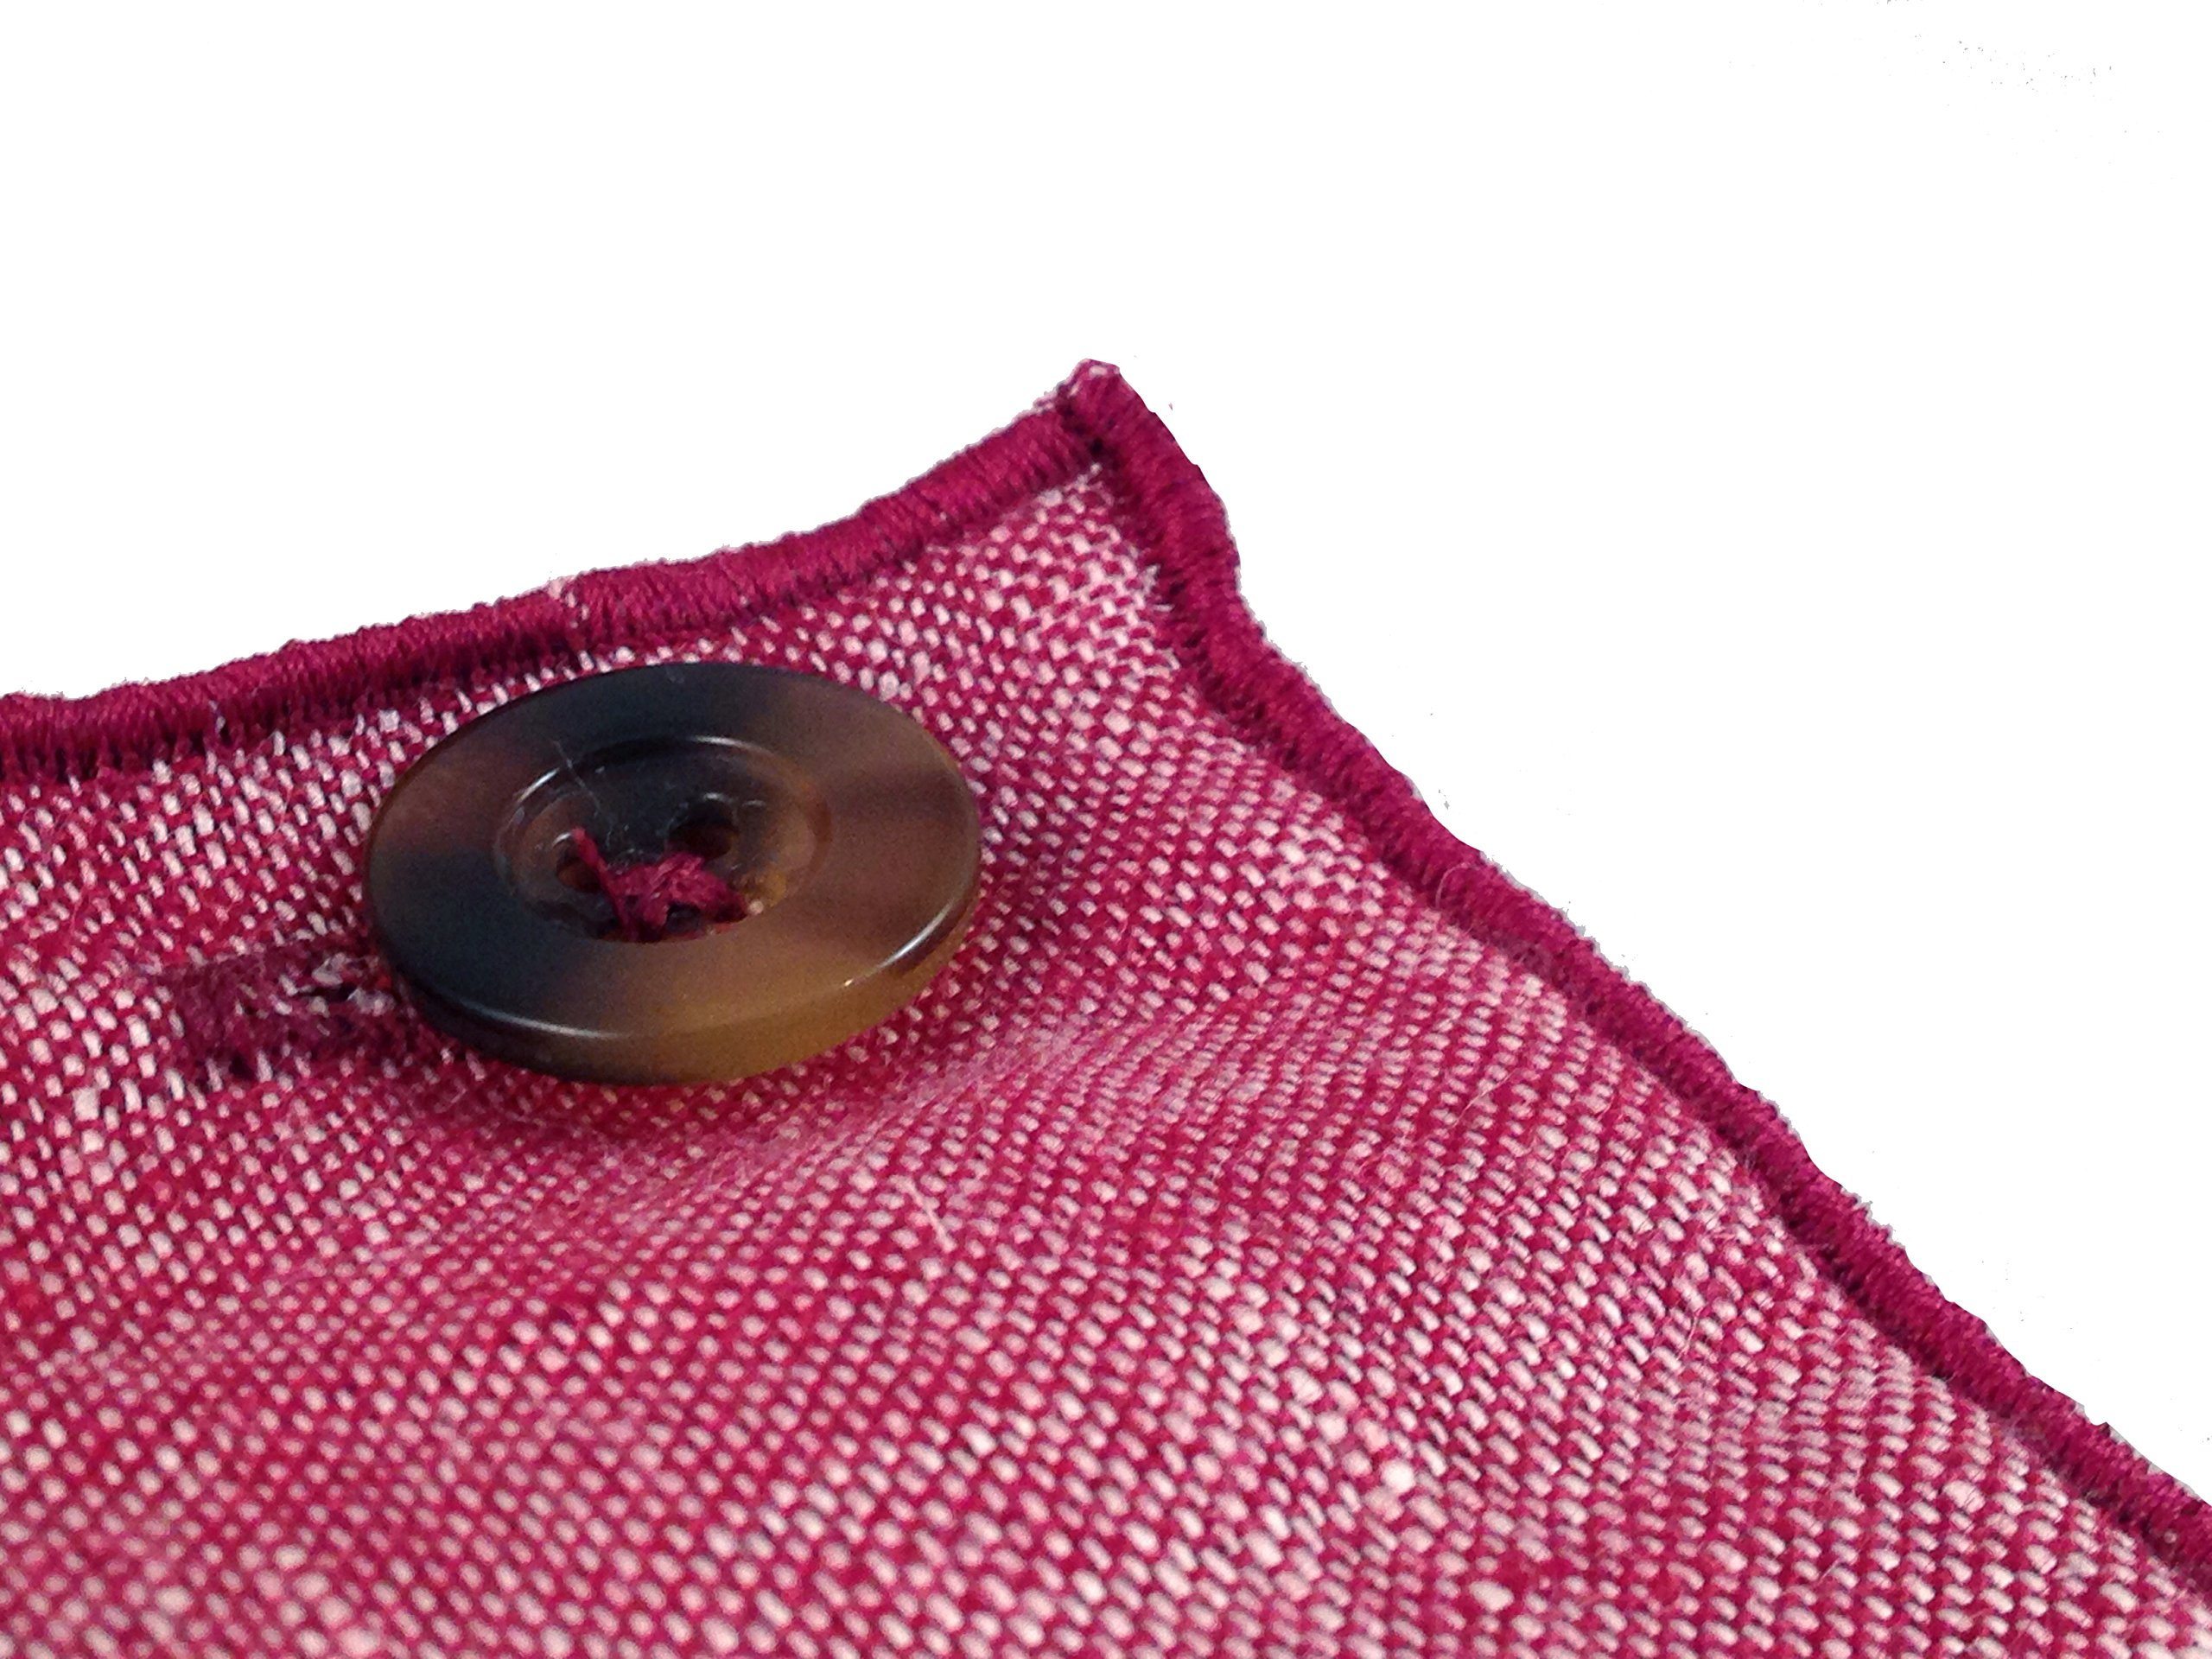 Maroon Linen with Brown Horn Button Men's Pocket Square by The Detailed Male by The Detailed Male (Image #4)